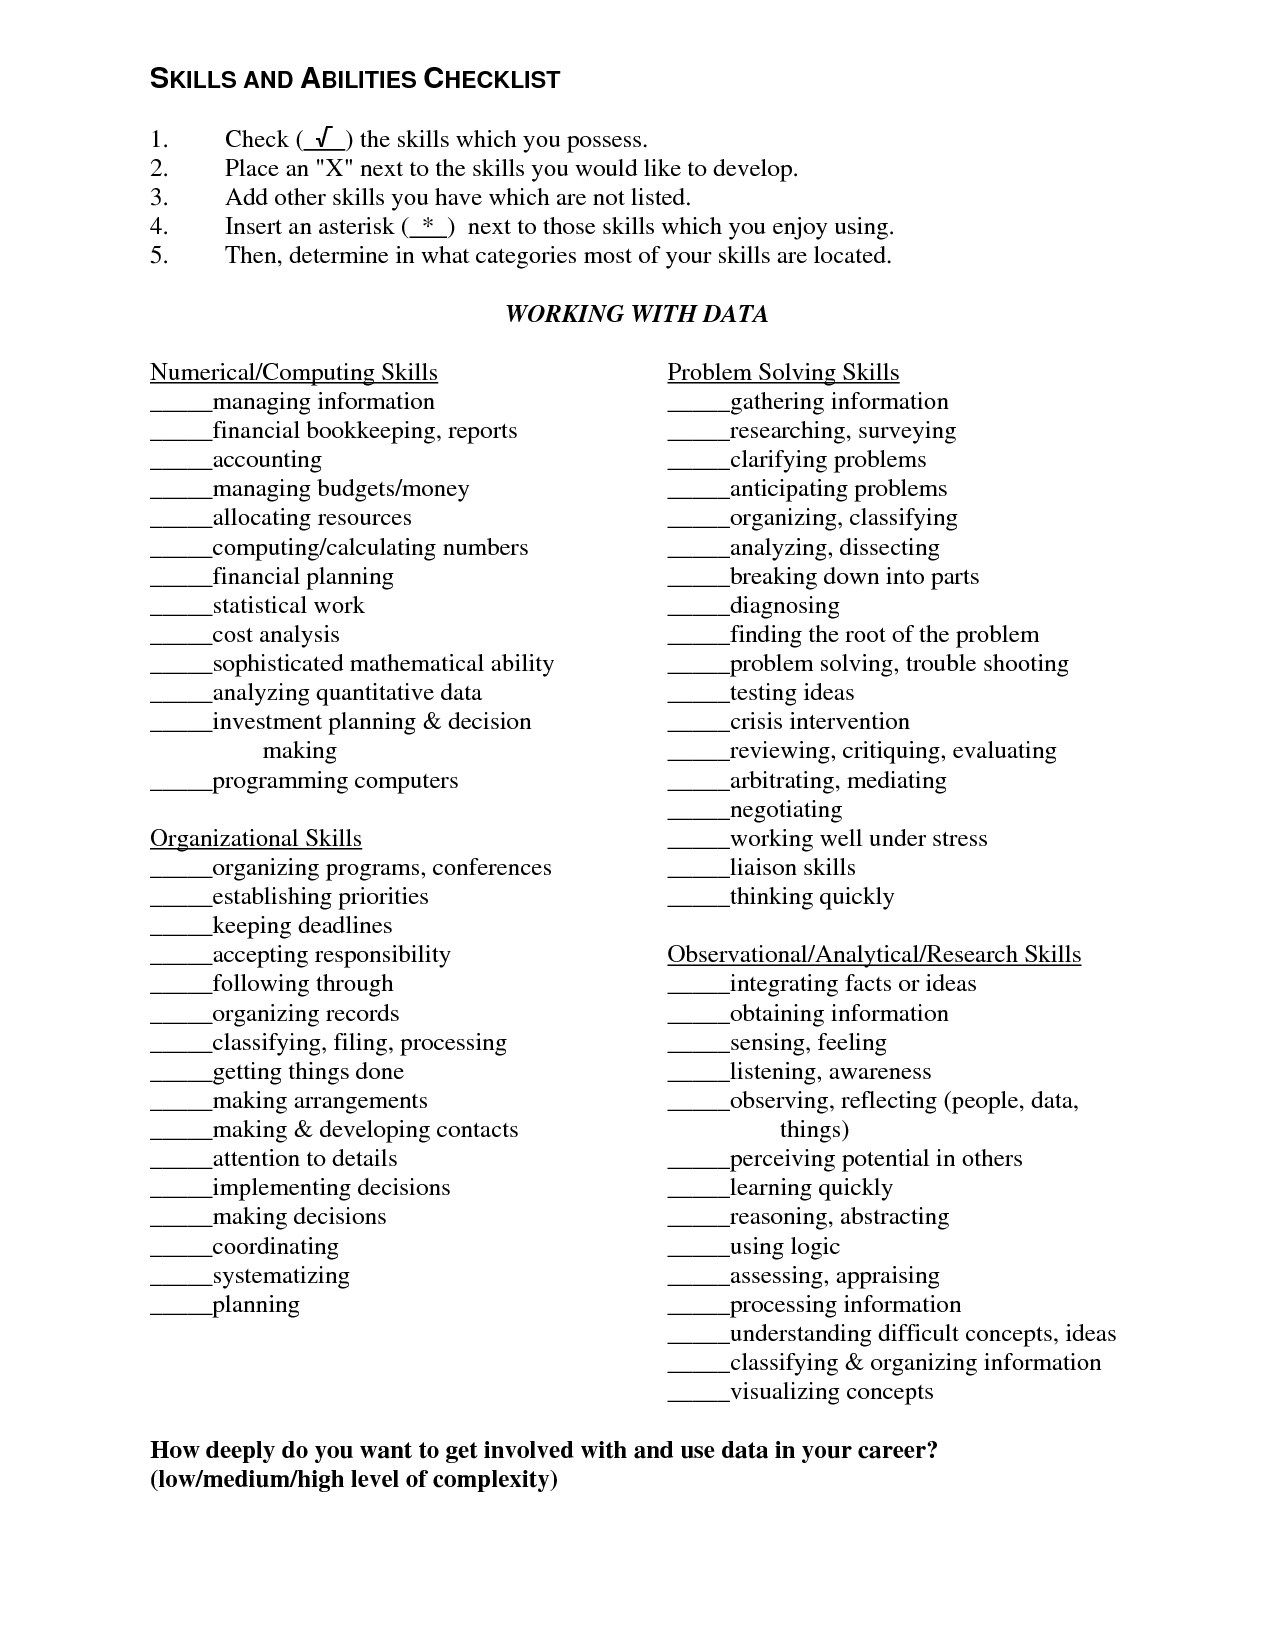 Skills Qualifications Resume Examples Make Sample And Abilities